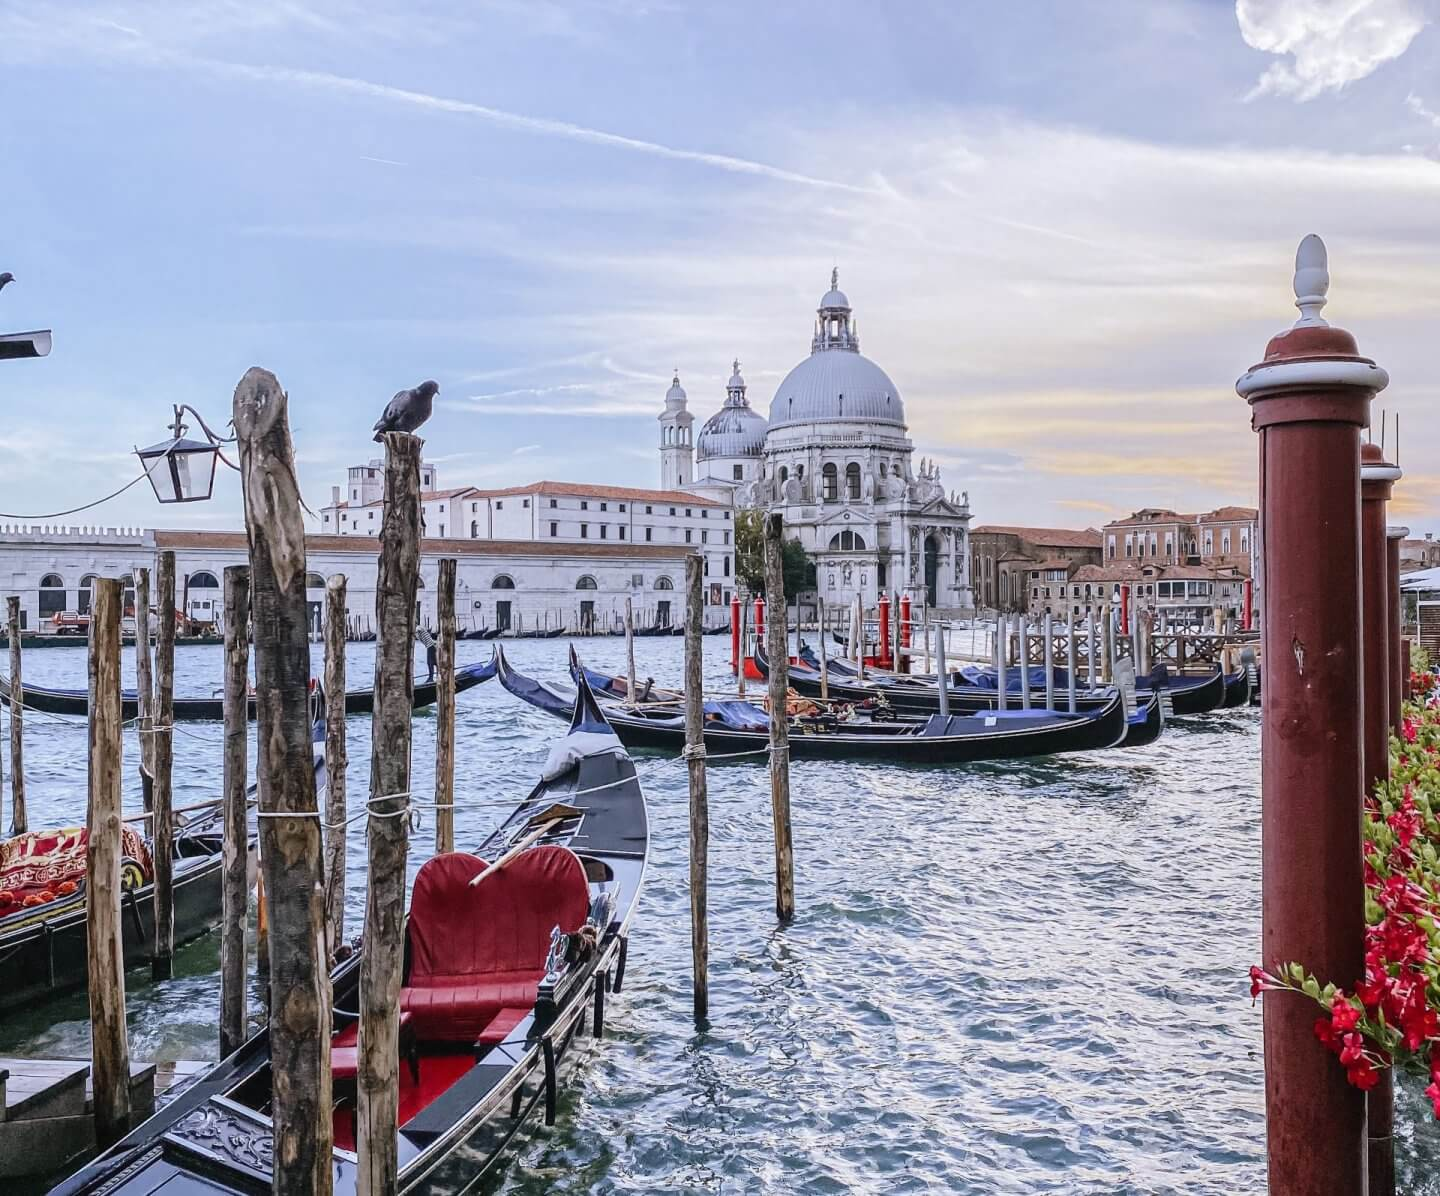 image of the Lagoon from 3 days in Venice